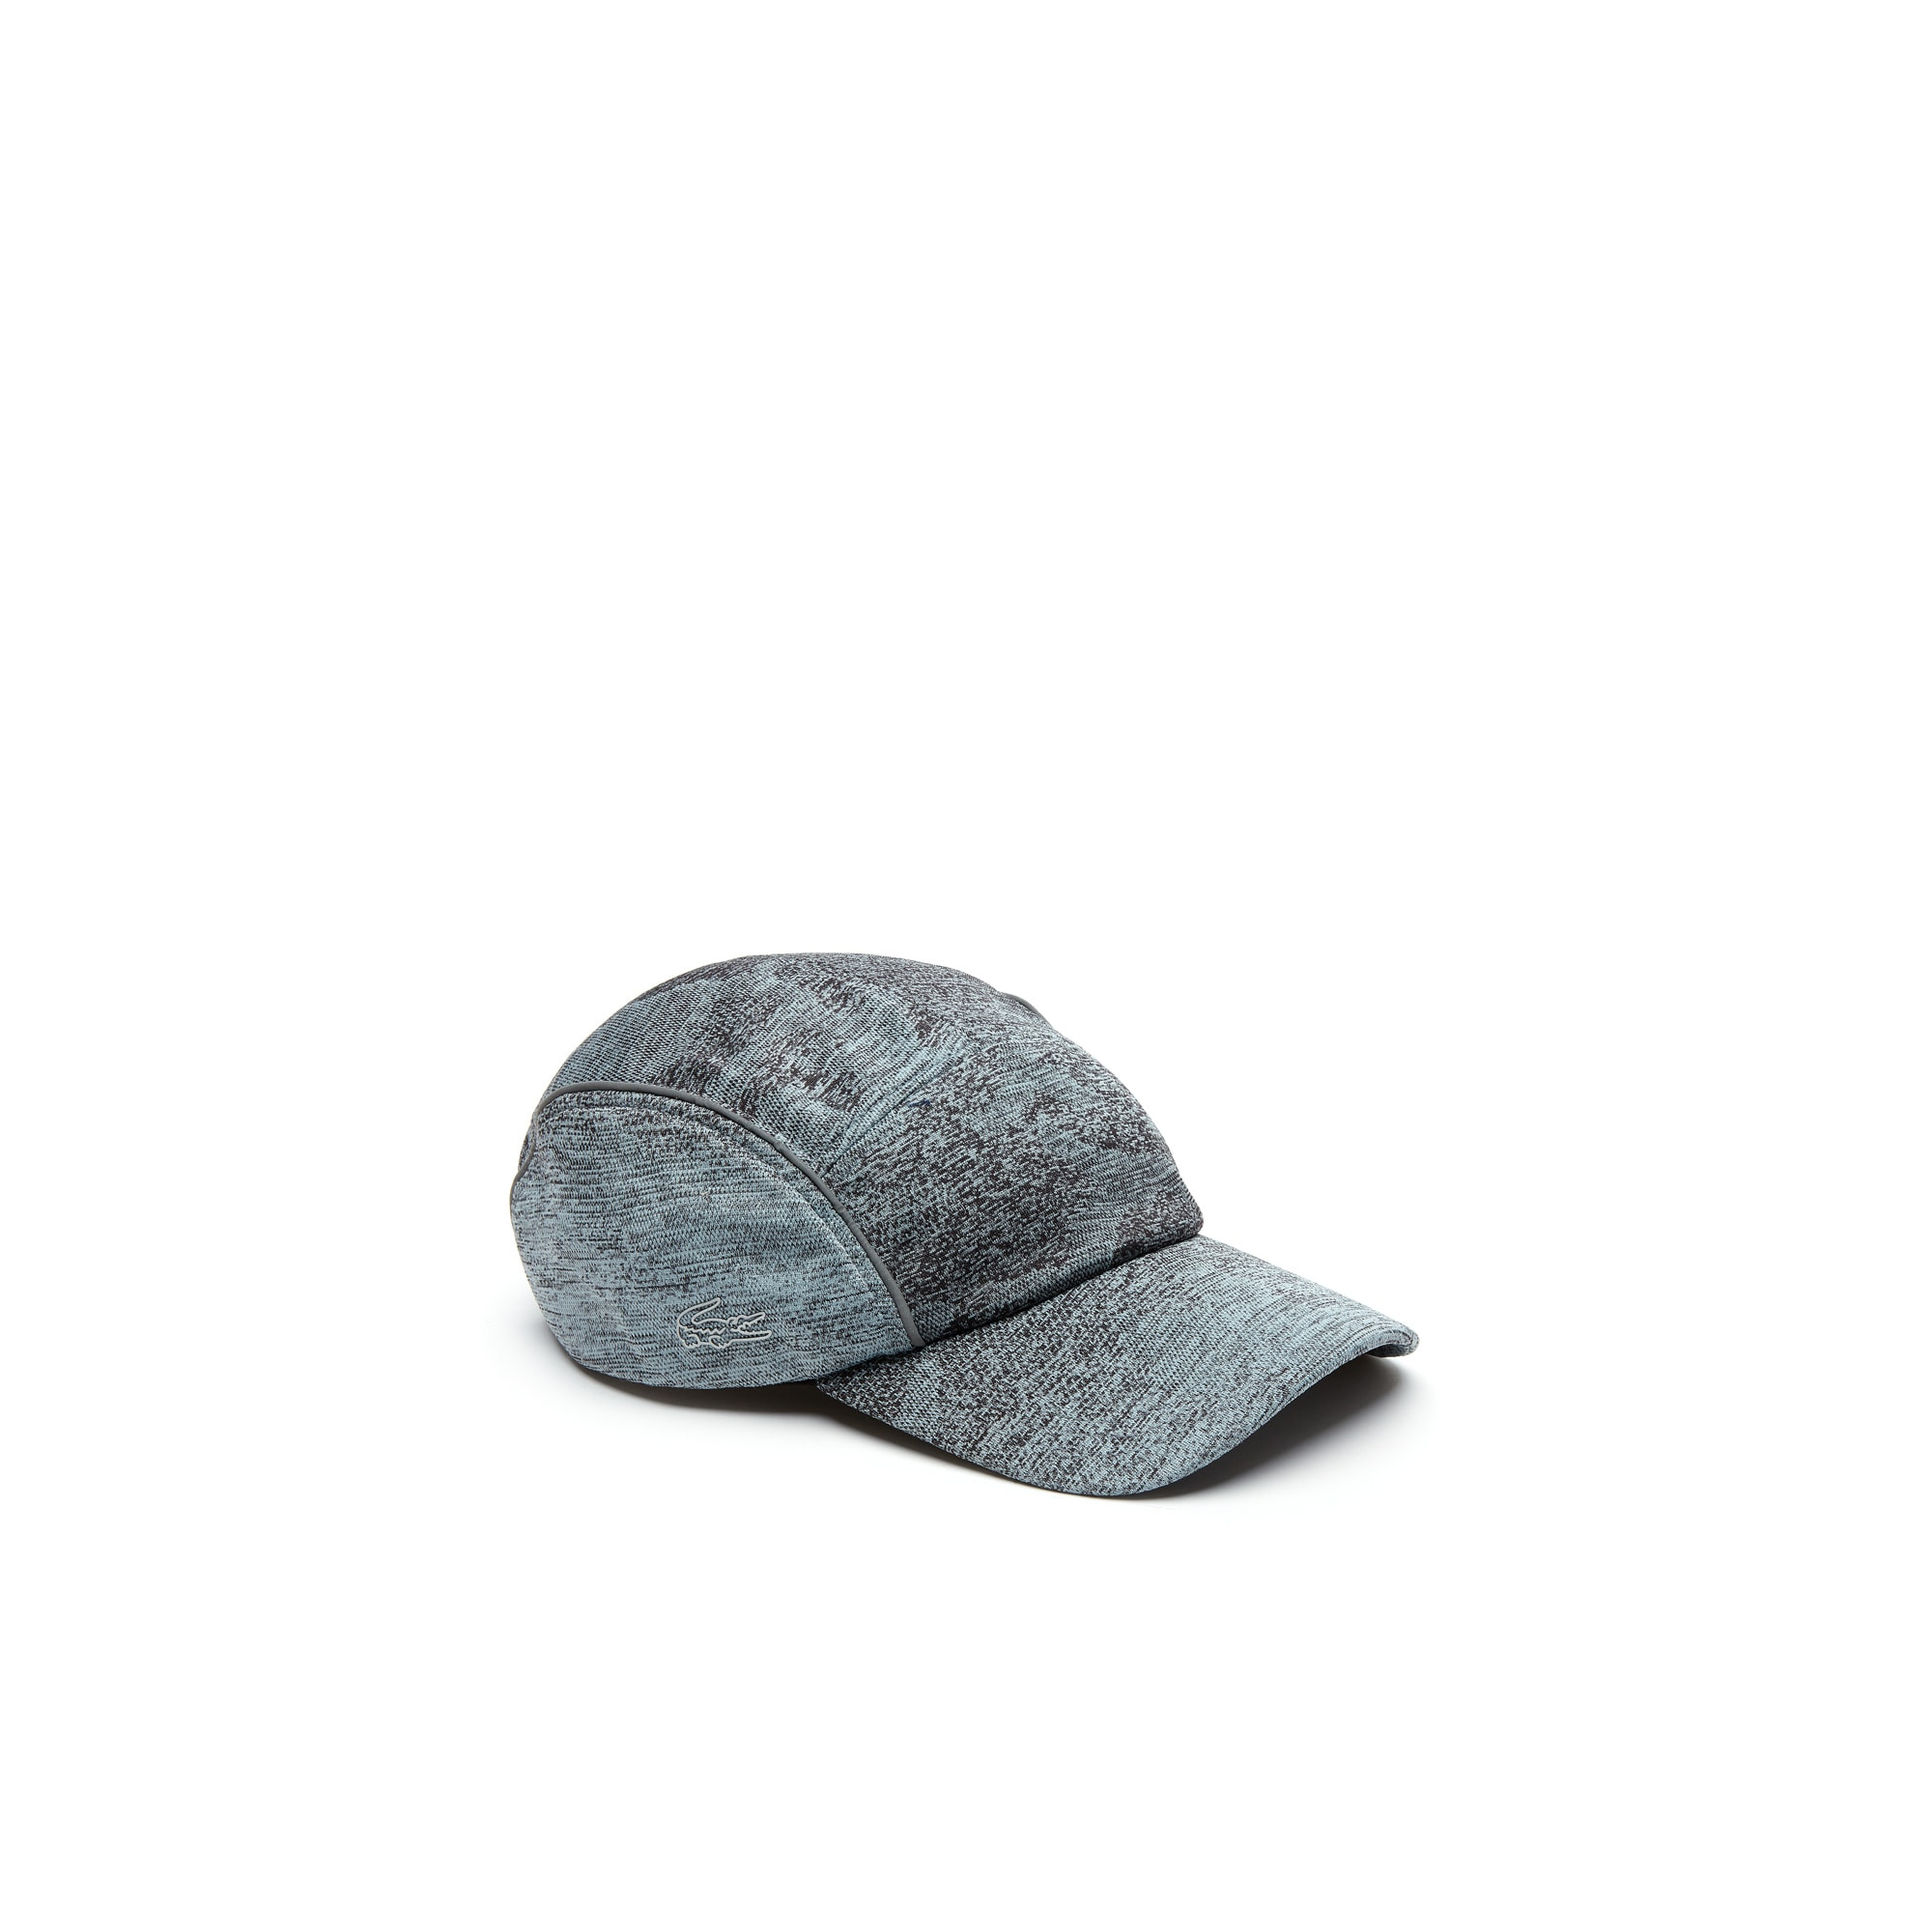 Men's Lacoste SPORT Print Technical Jersey Tennis Cap